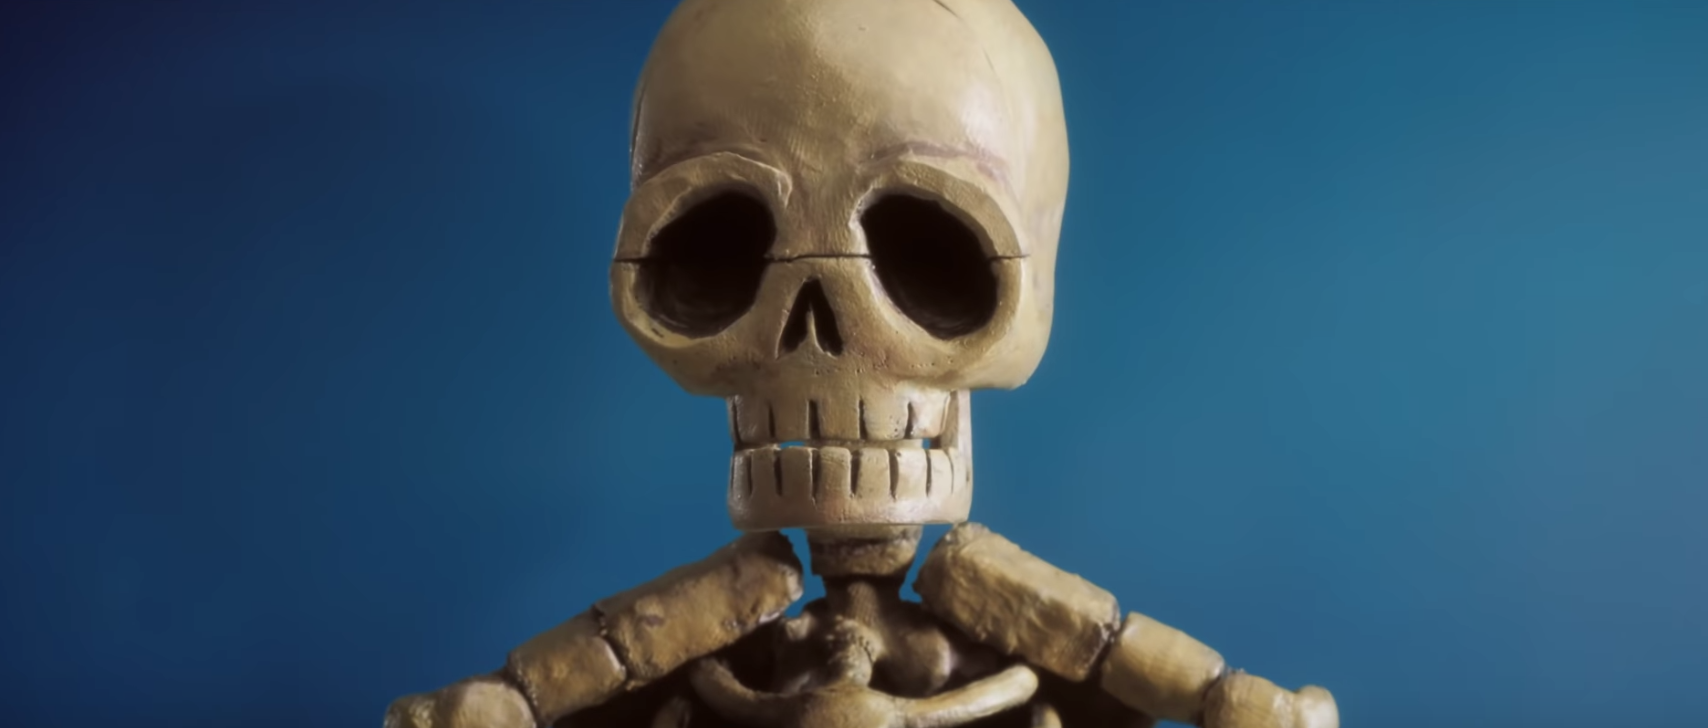 """REBOOTED"" Shows Us The Ups And Downs Of An Out Of Work Skeleton Actor"